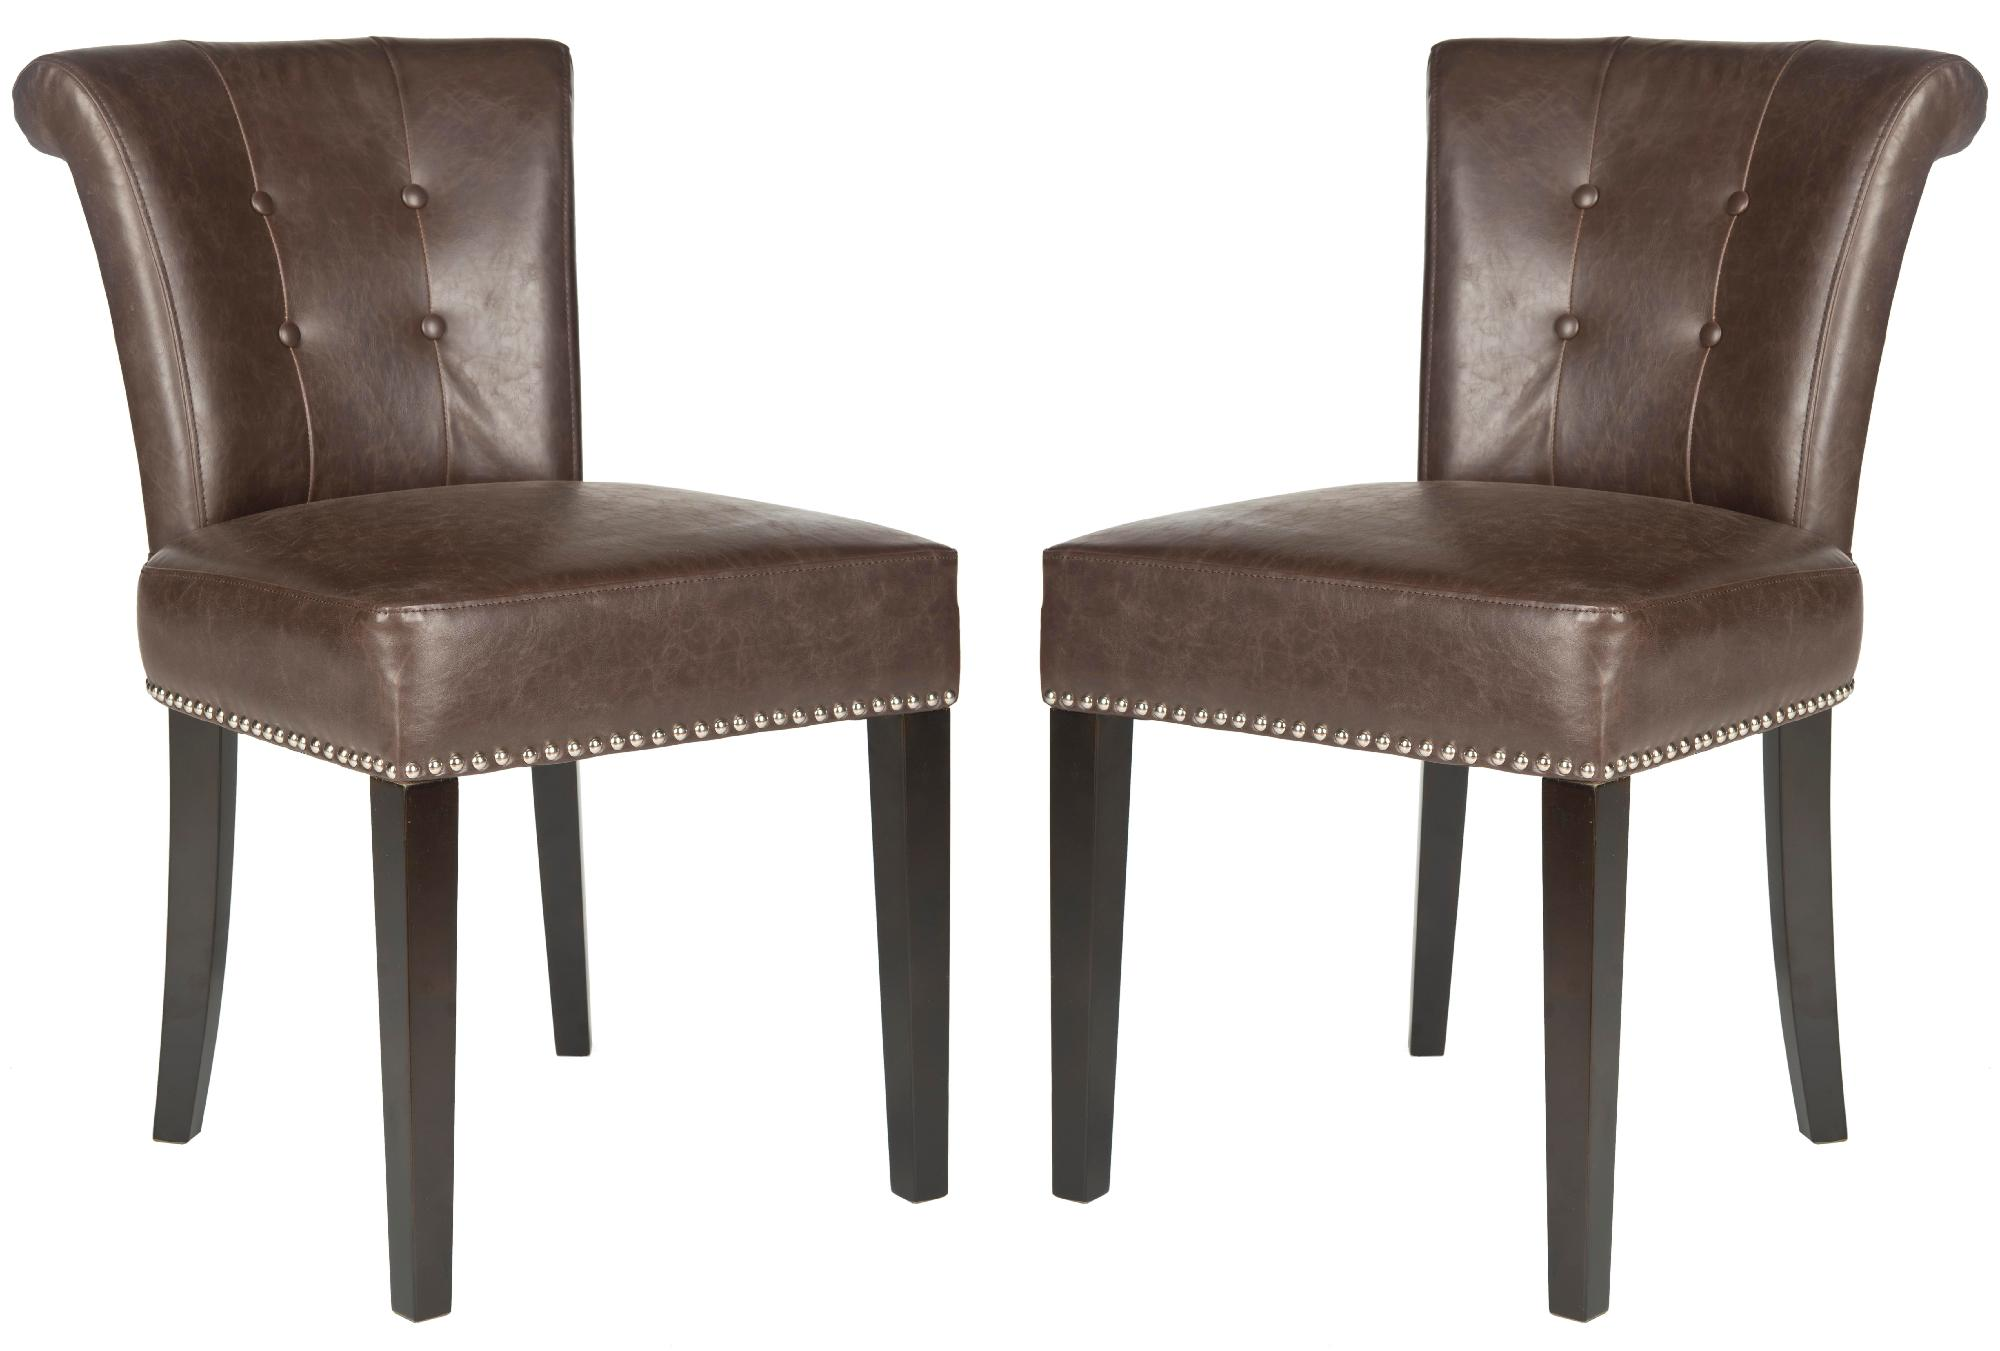 safavieh sinclair ring side chair ikea poang parts 21 39 39h set of 2 silver